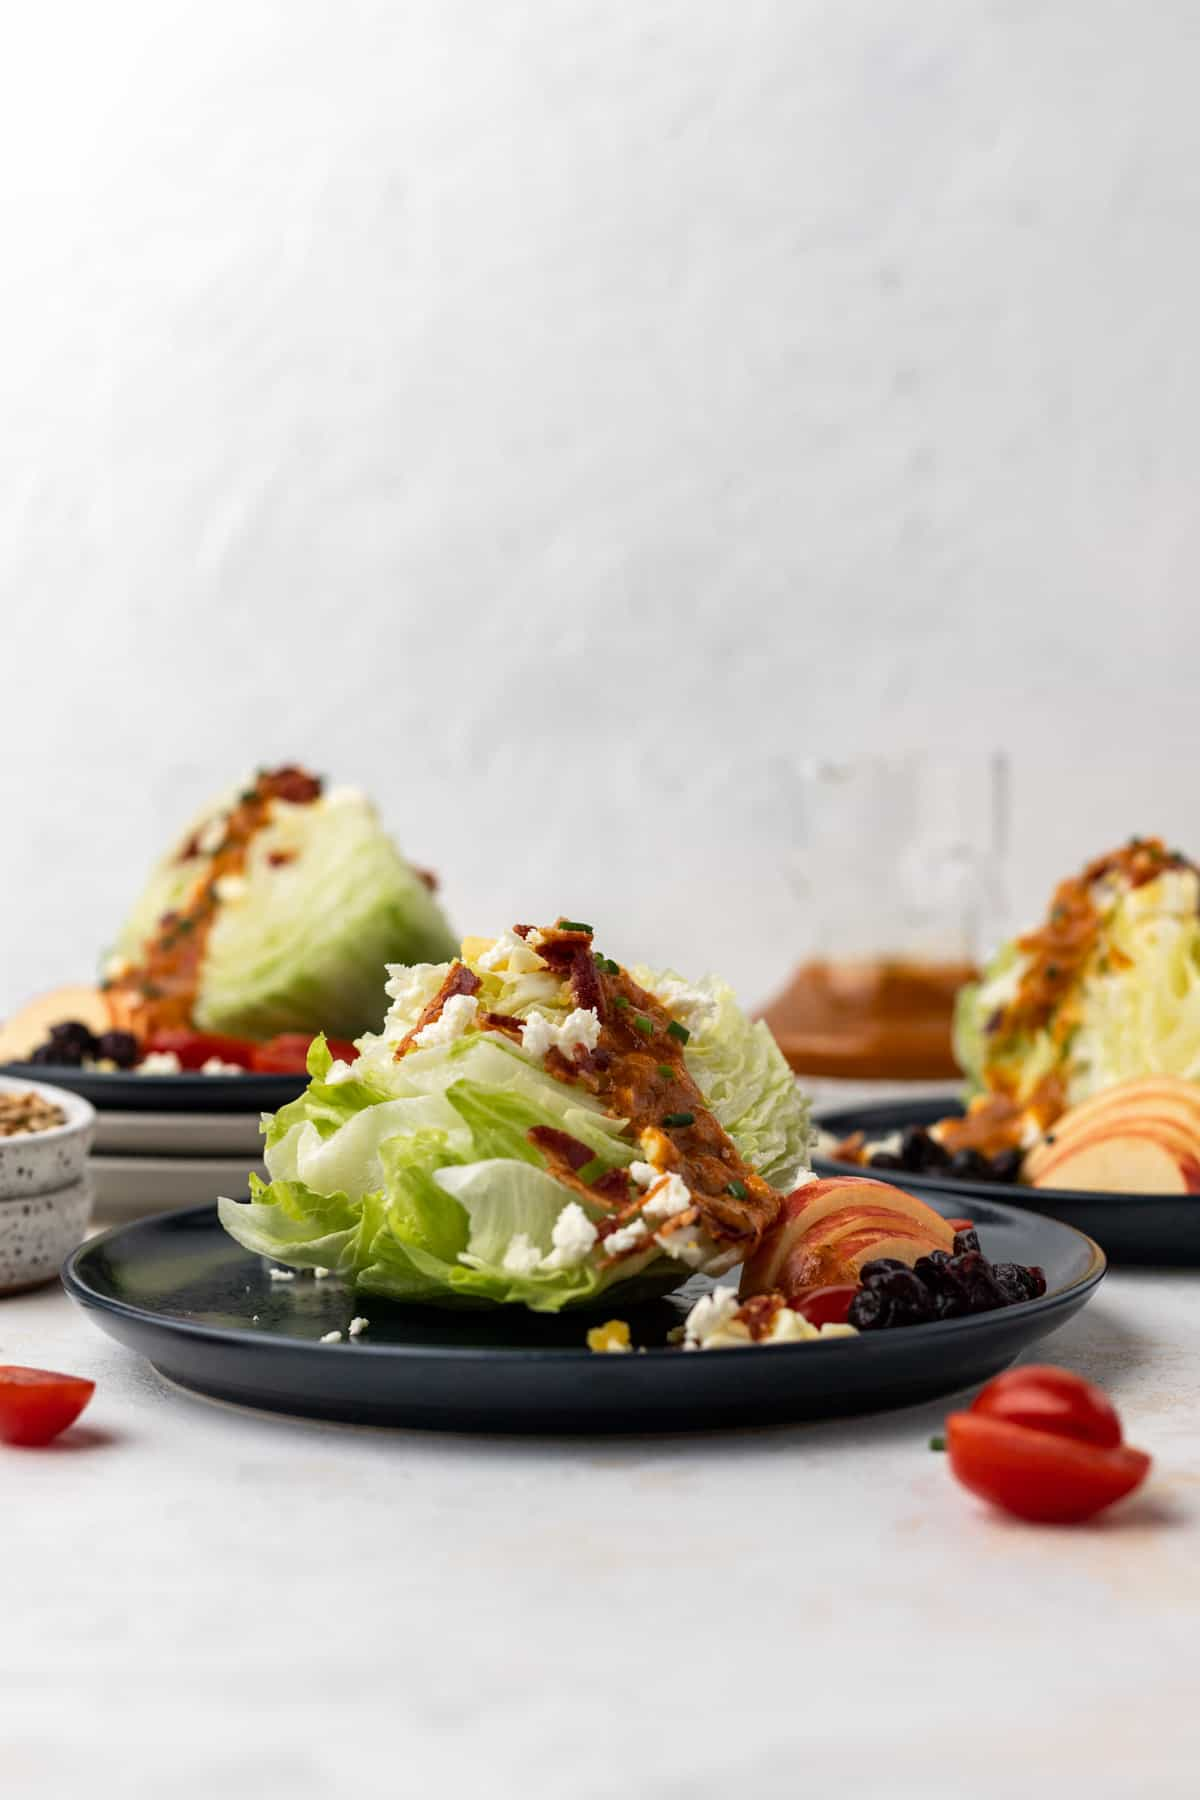 Pumpkin salad dressing drizzled over 3 wedge salads with salad toppings around them.